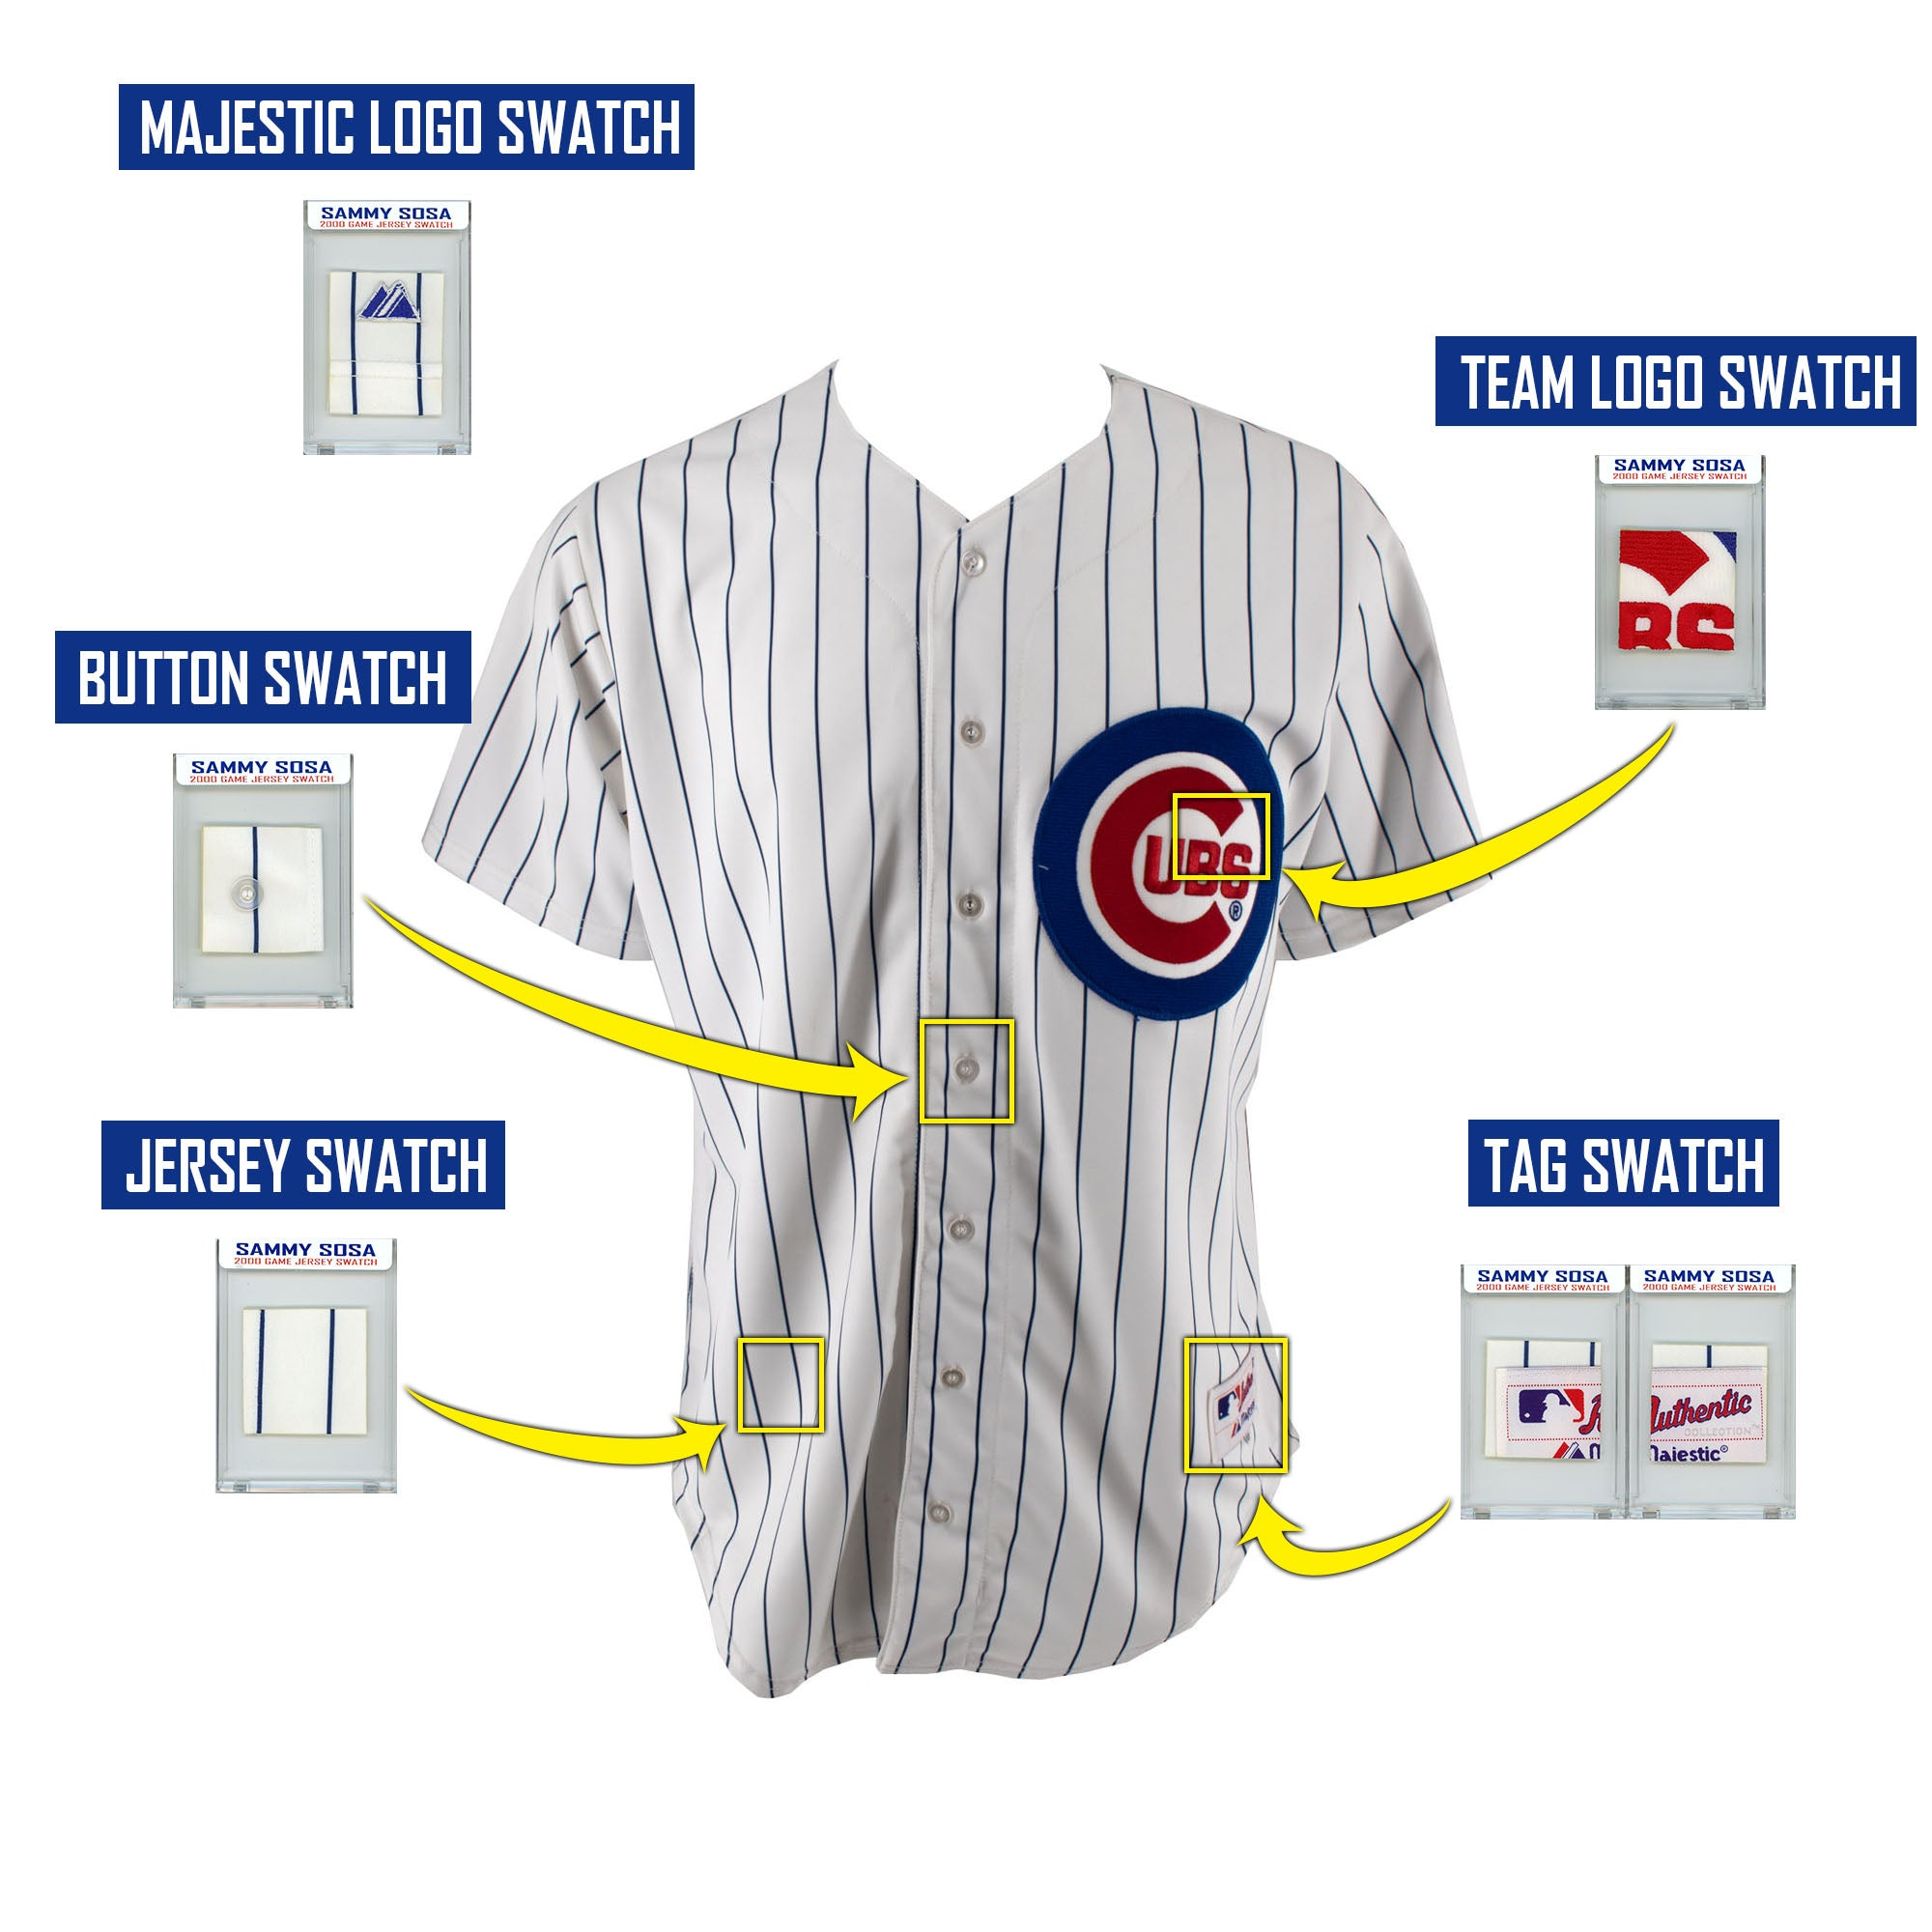 SAMMY SOSA 2000 CHICAGO CUBS GAME WORN JERSEY MYSTERY SWATCH BOX!